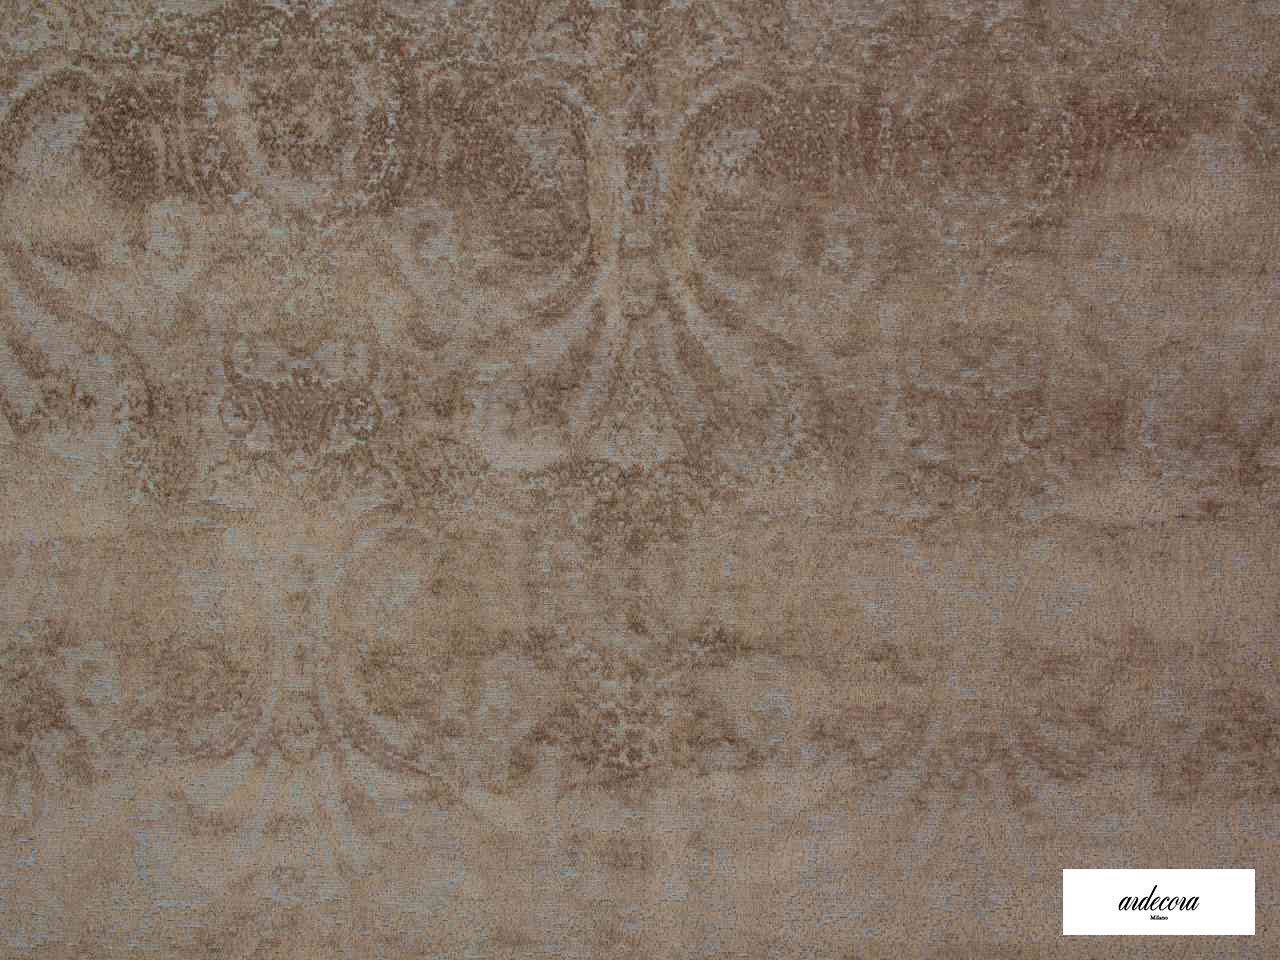 Ardecora - Novecento - 15383.886  | Upholstery Fabric - Brown, Damask, Fibre Blends, Traditional, Domestic Use, Standard Width, Rococo